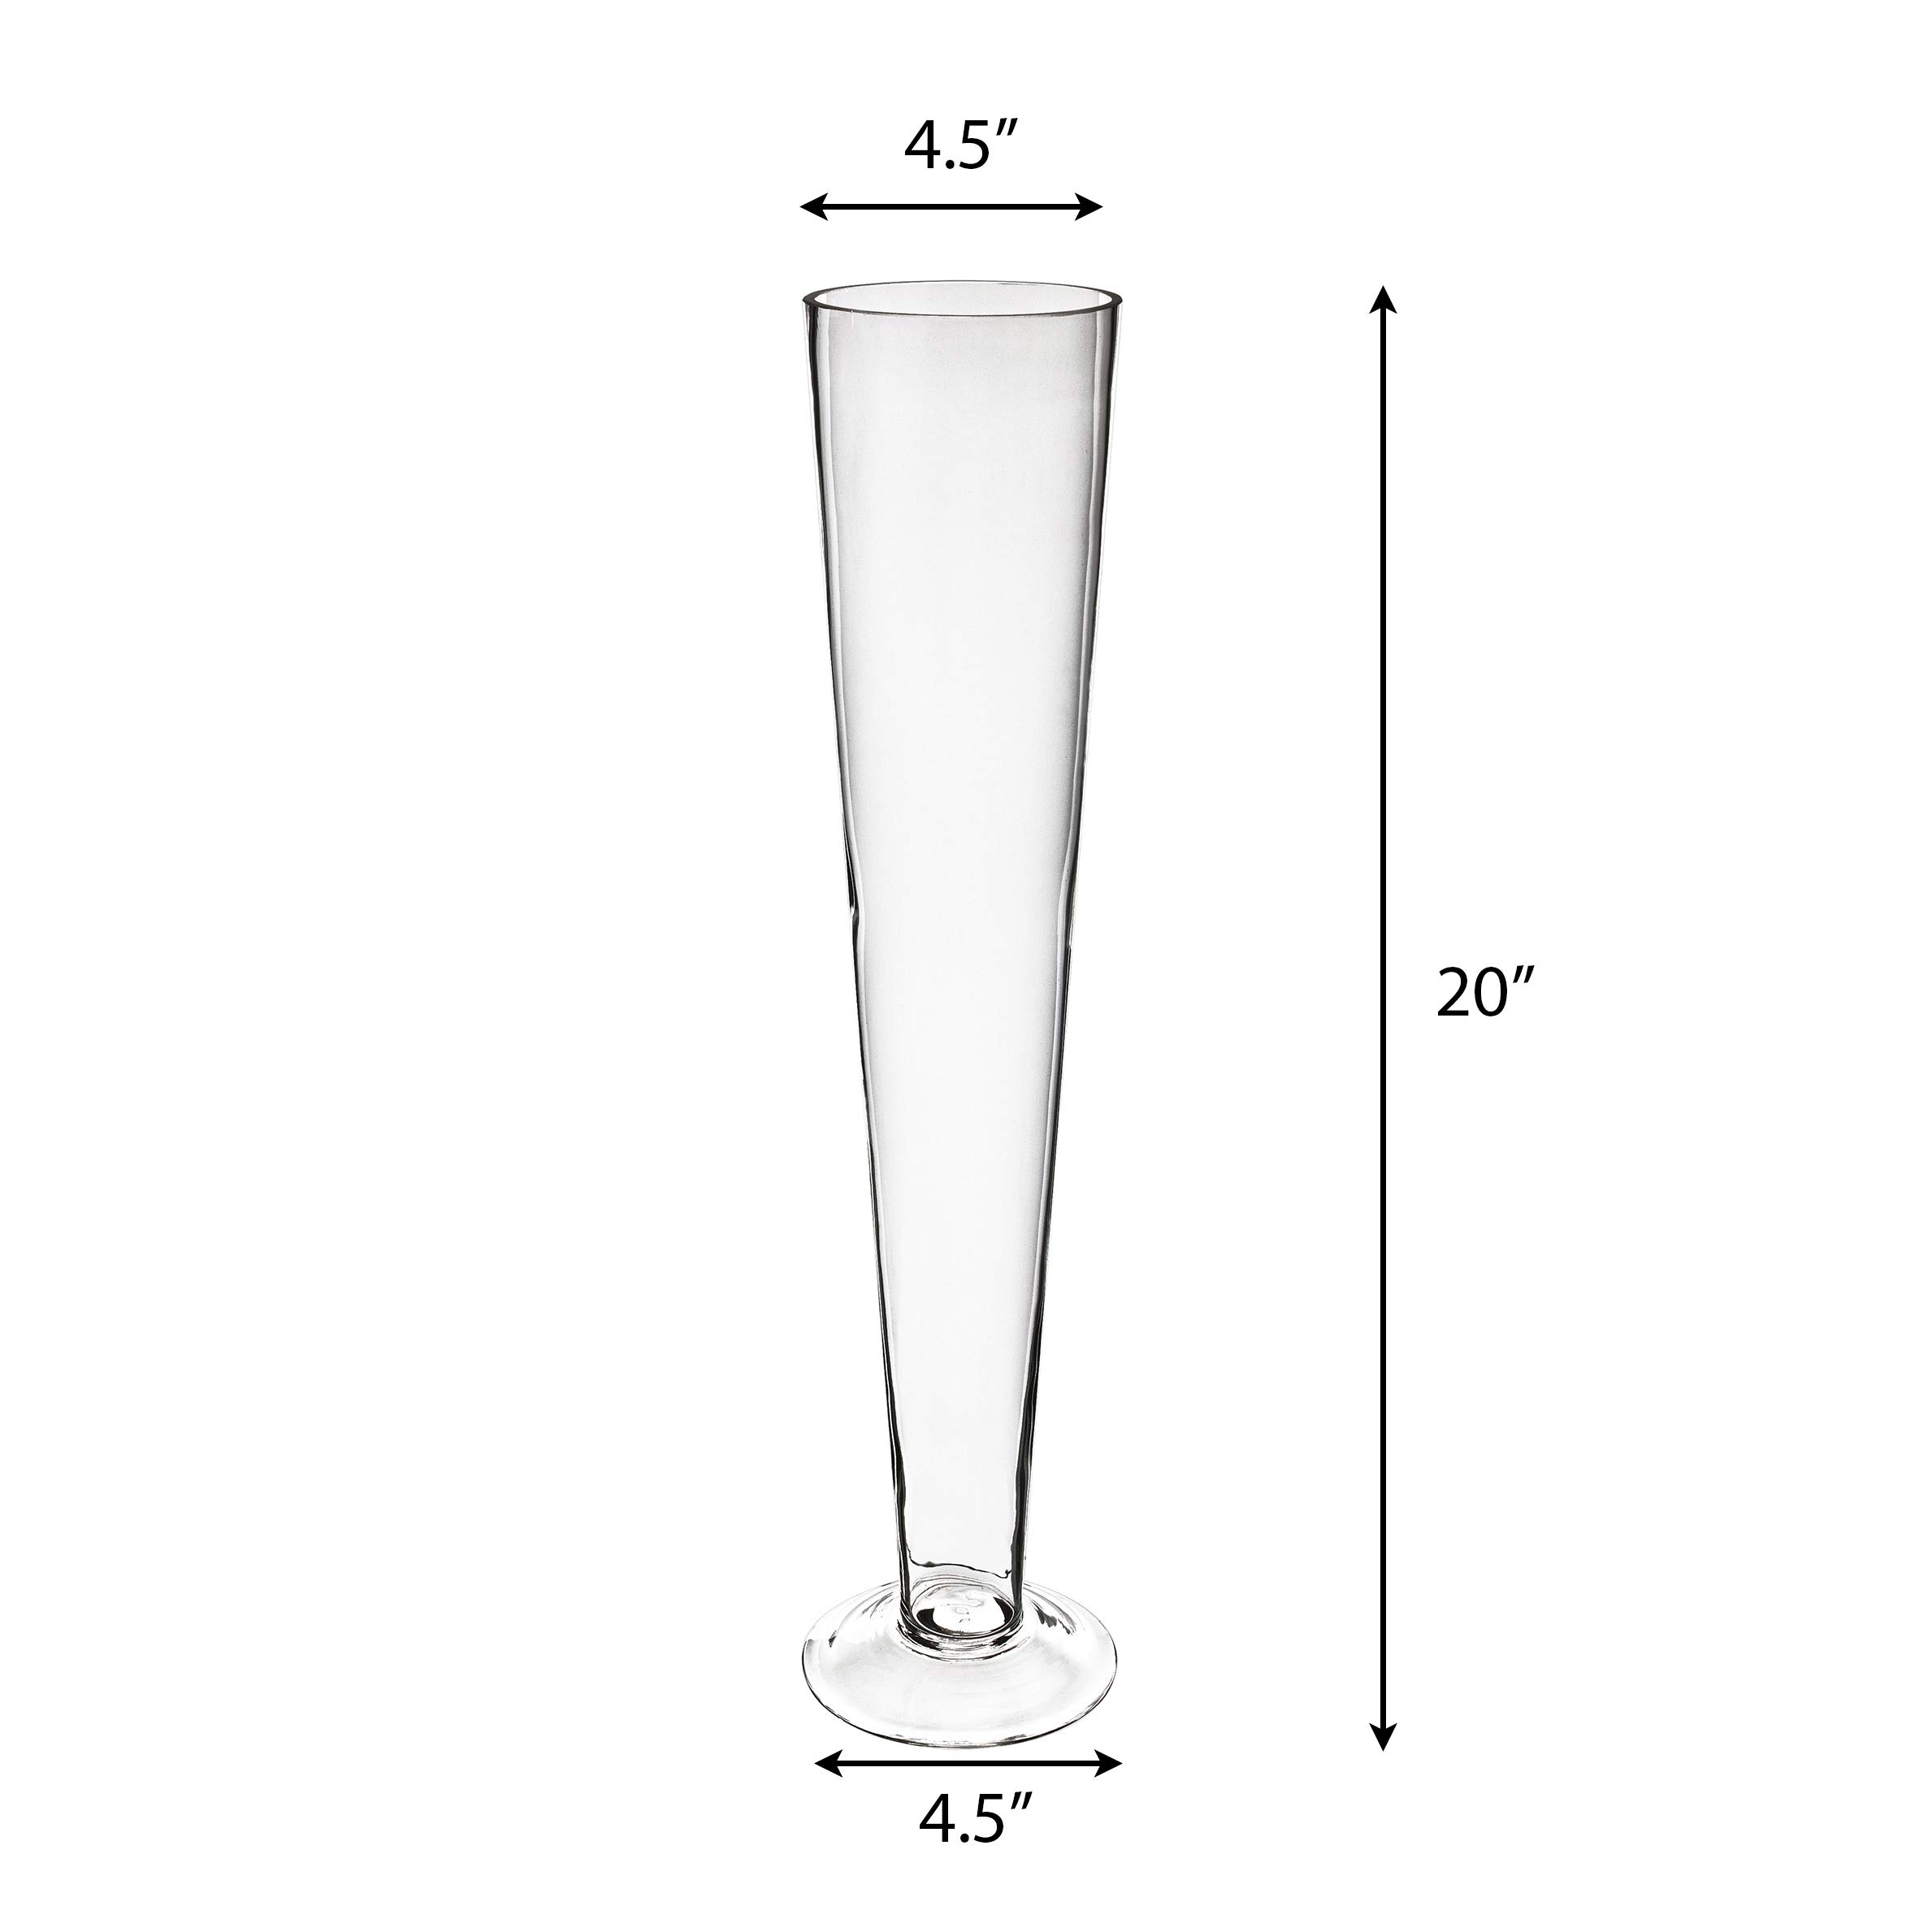 CYS EXCEL Pack of 6 Glass Trumpet Vase, Tapered Design Center Piece, Floral Display for Events & Weddings (Clear-4.5'' wide x 20'' tall)